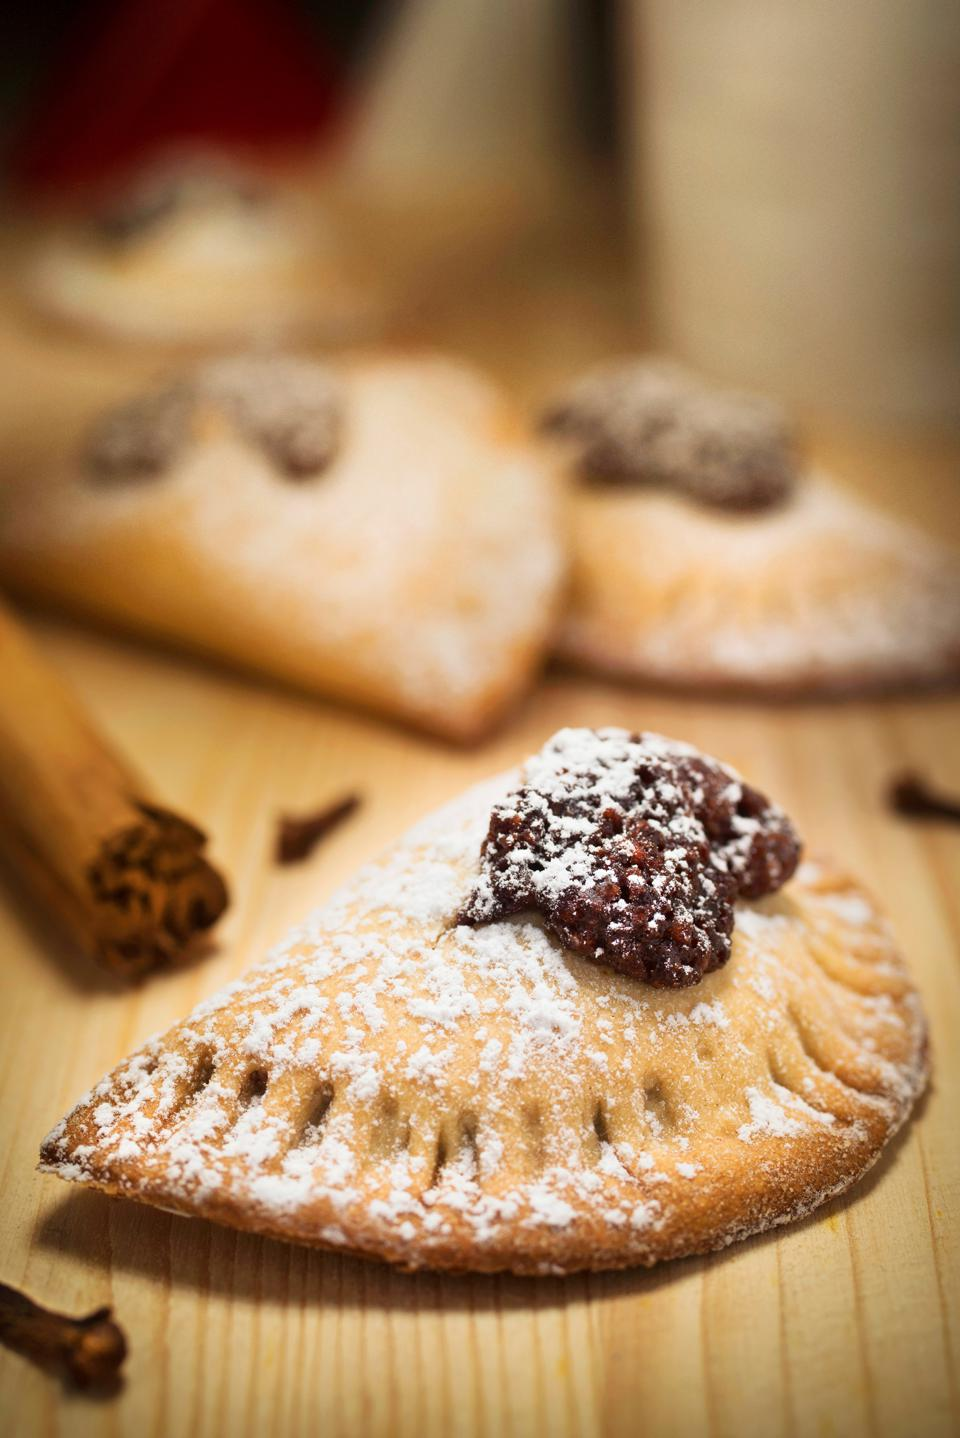 Mpanatigghi. Typical Sweet of Modica in Sicily Mpanatigghi. Typical Sweet of Modica in Sicily. (Photo by: Rosario Scalia/REDA&CO/Universal Images Group via Getty Images)